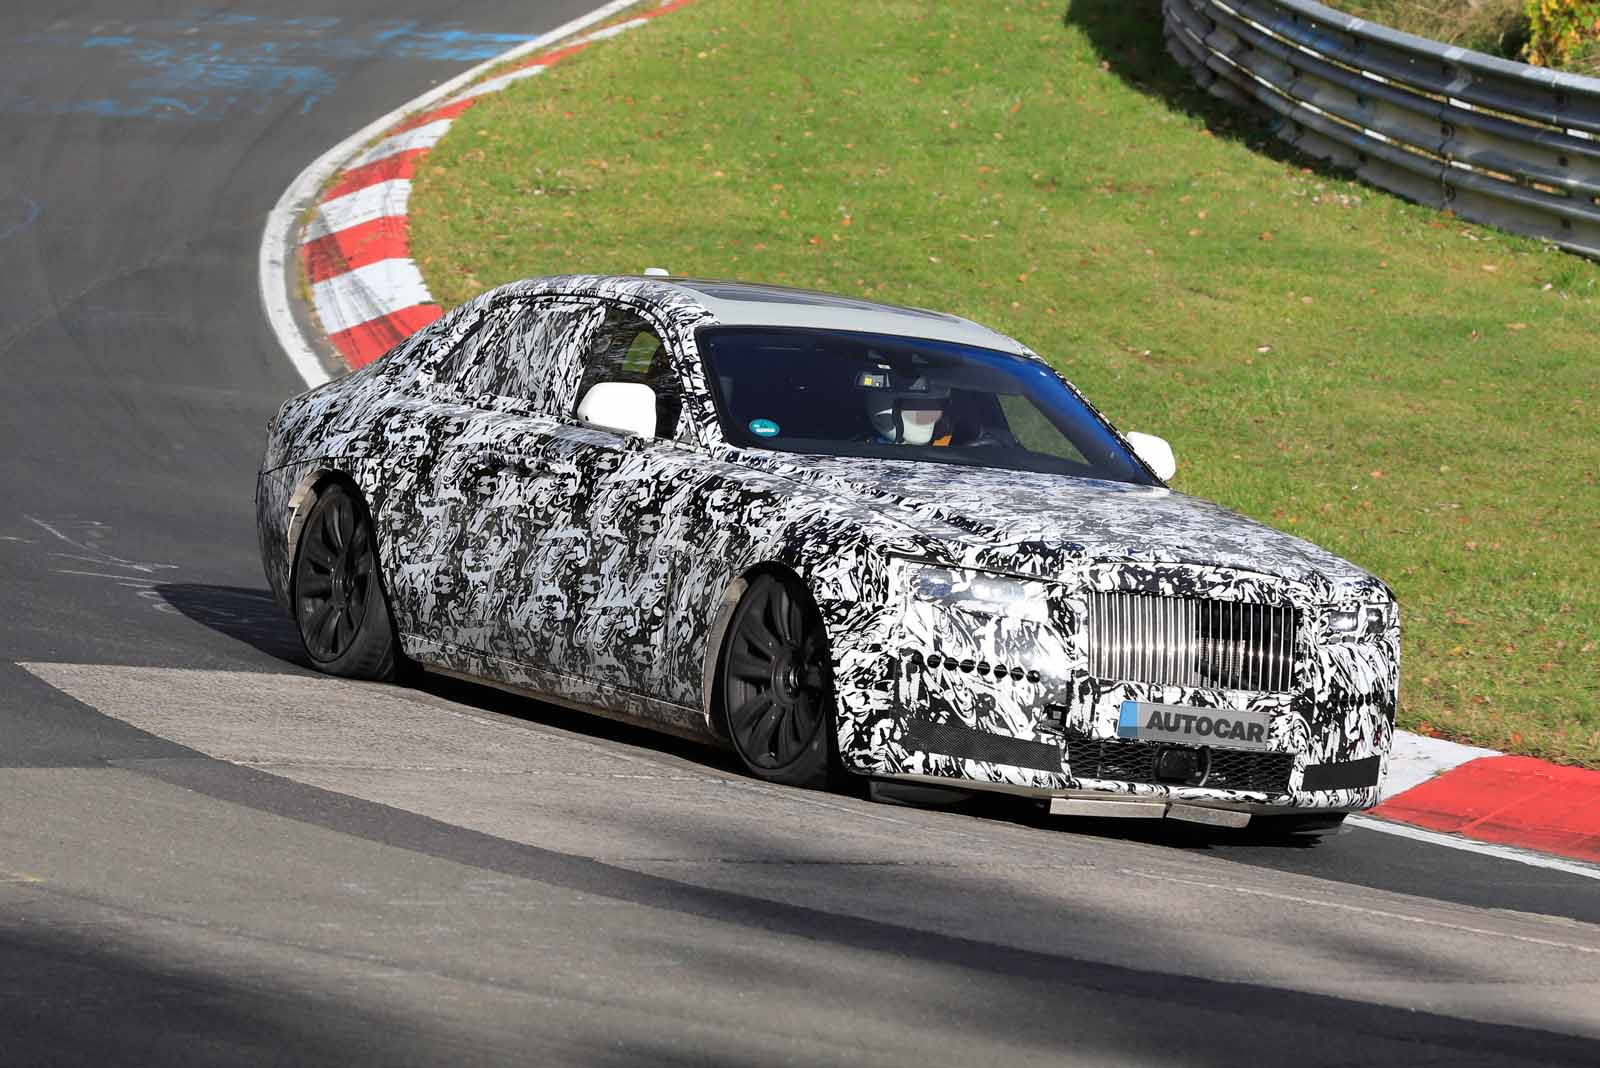 New 2020 Rolls Royce Ghost Hits The Nurburgring Autocar